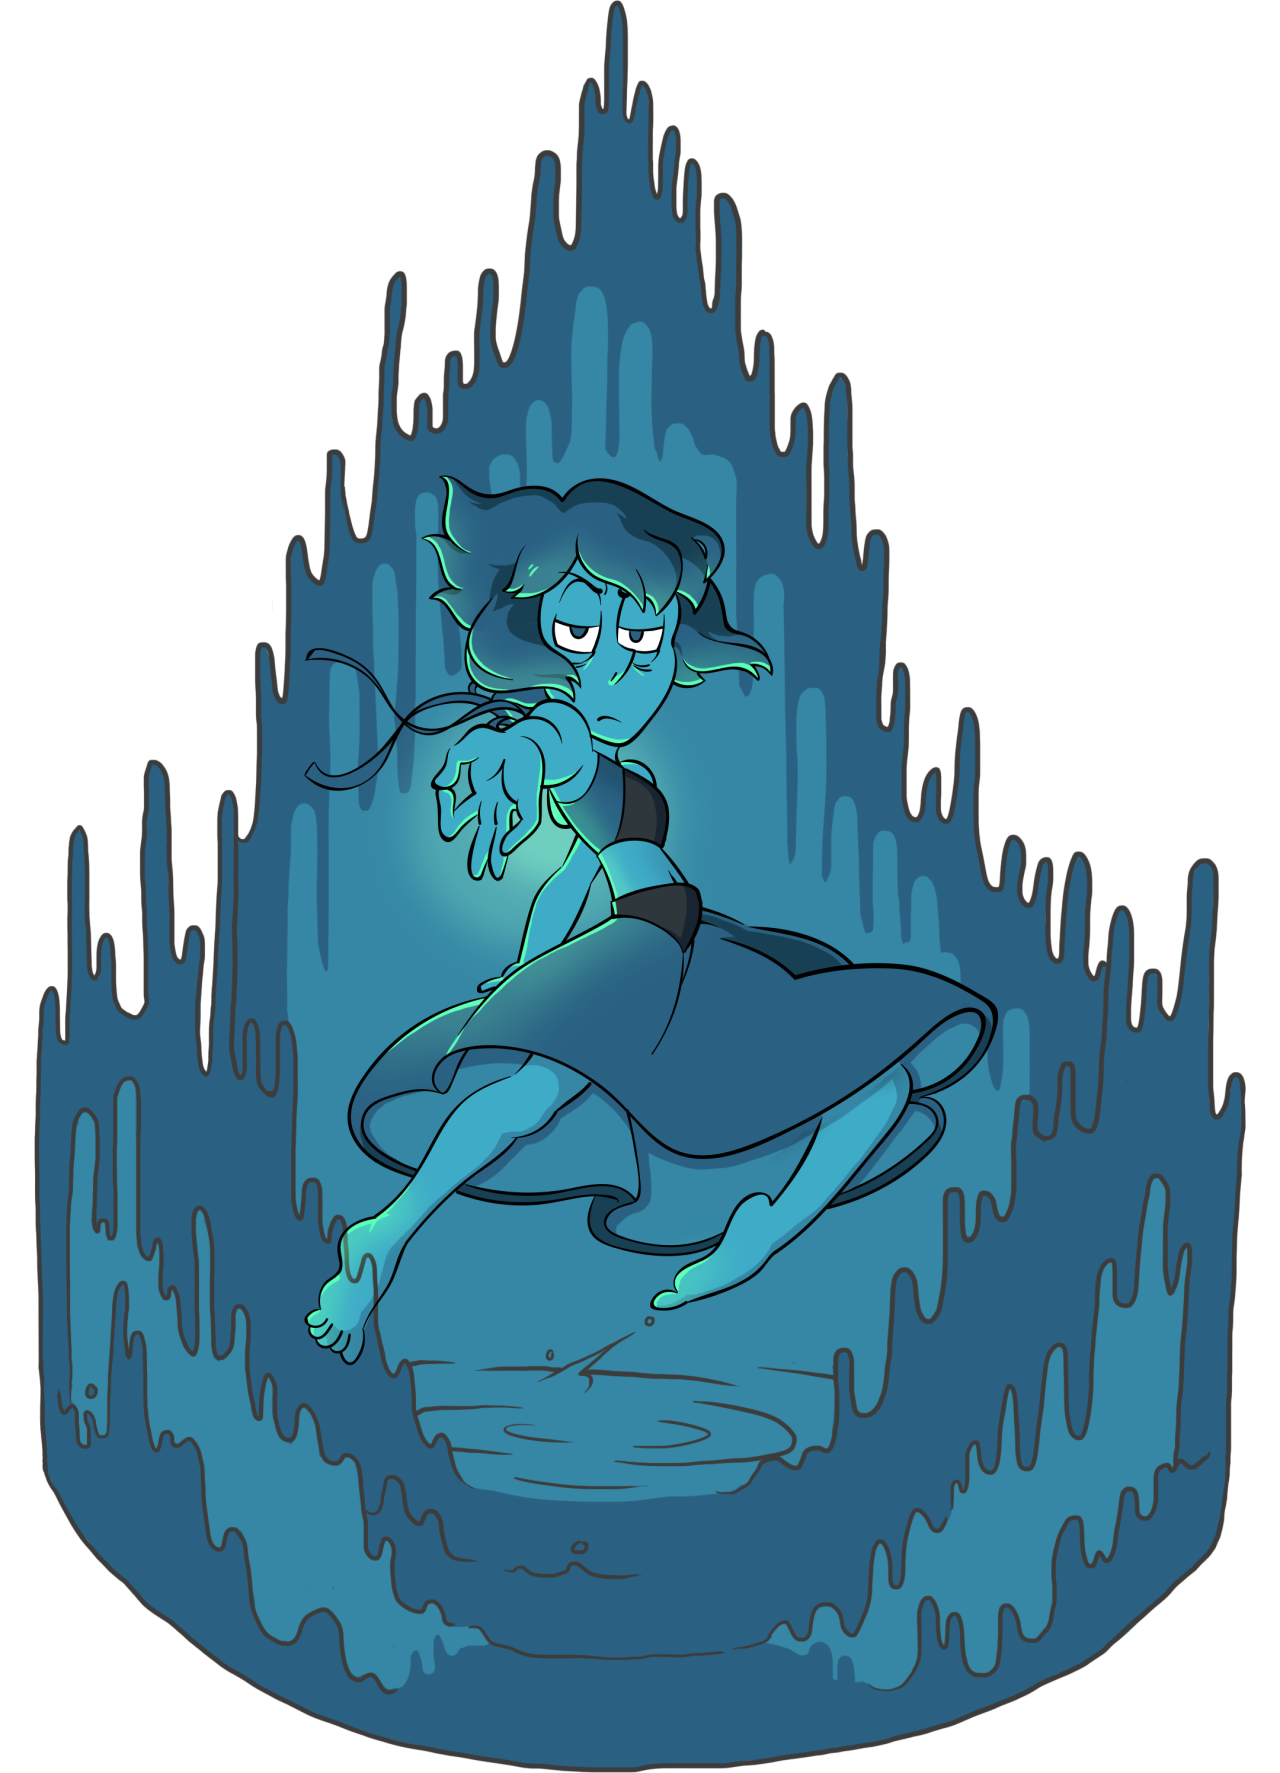 this has been in my wips folder for 1.5 years so u know im never gonna finish it heres so old lapis nya? art by me